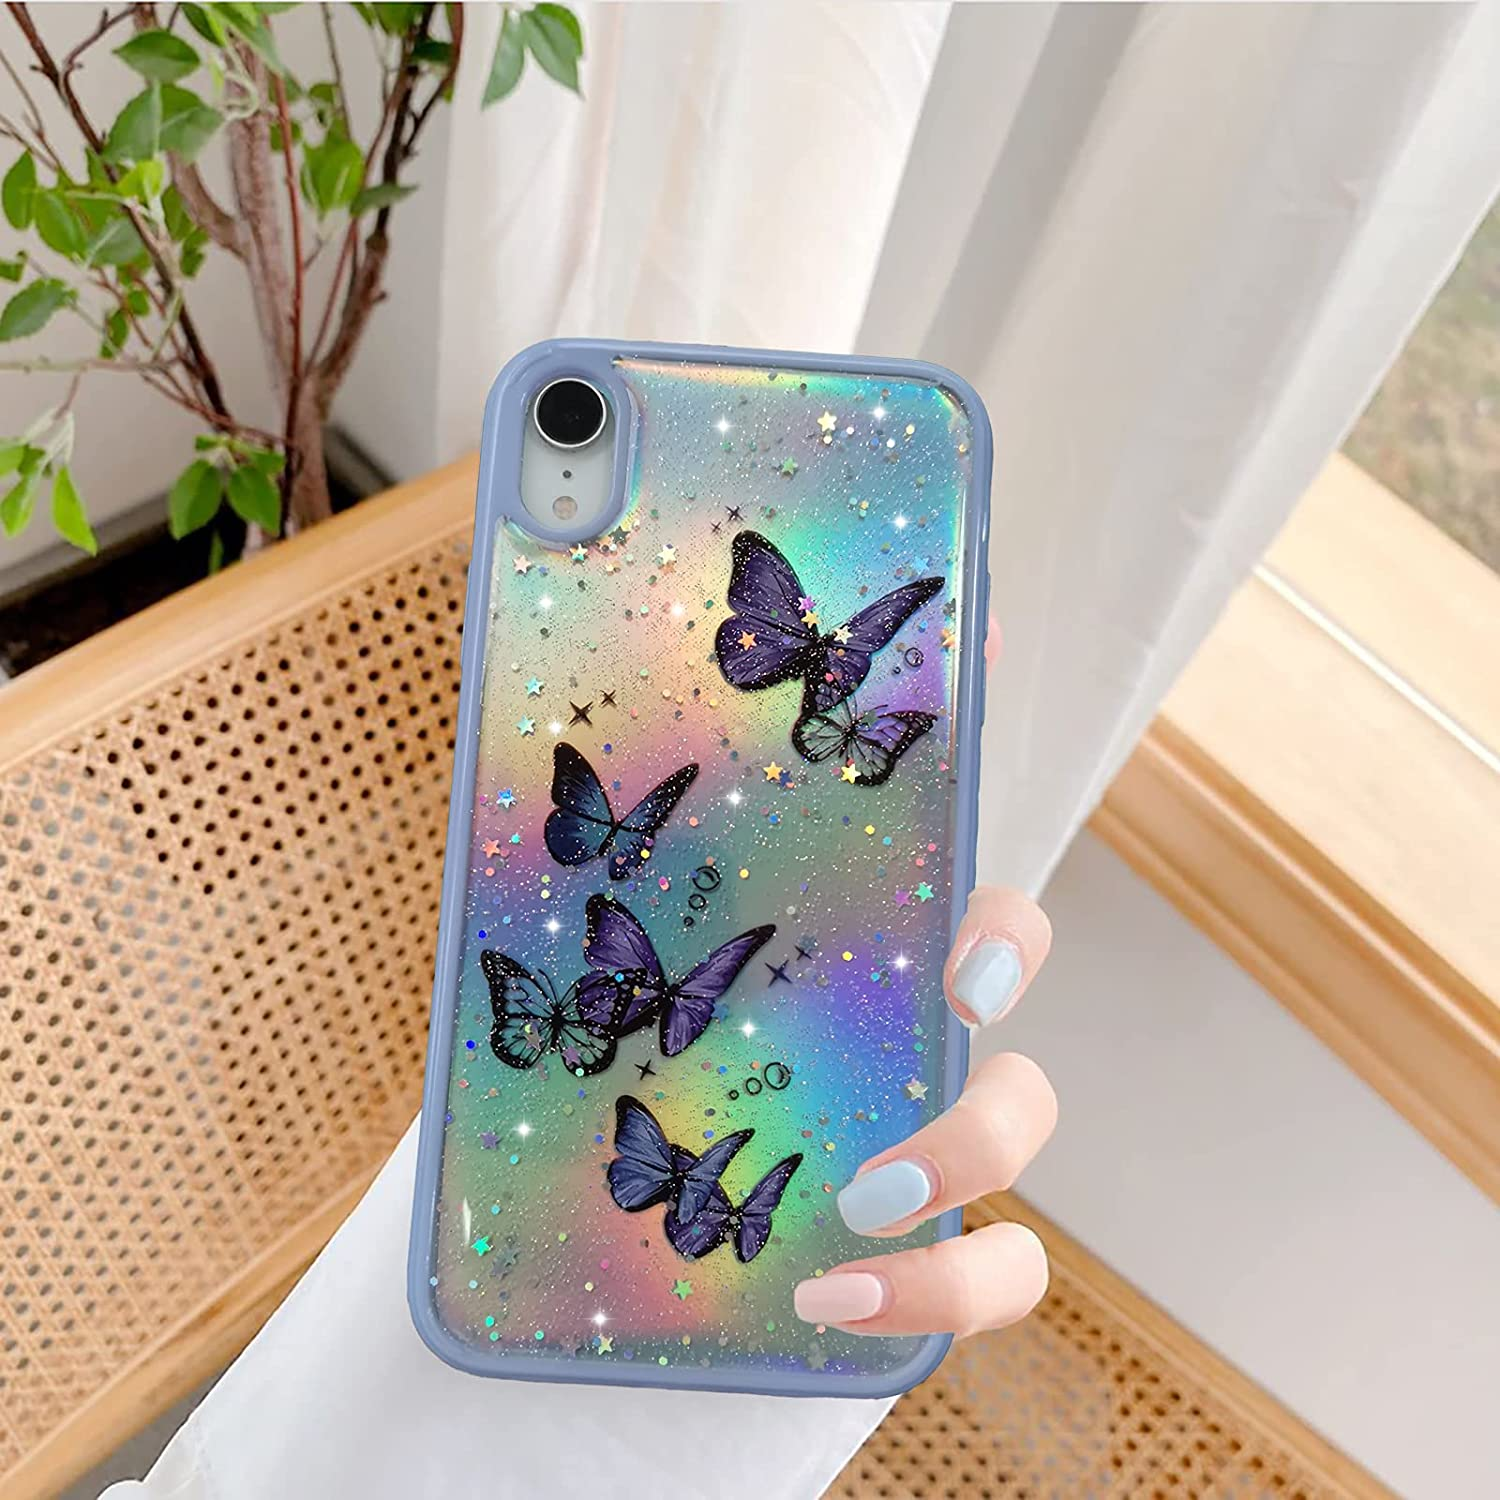 YKCZL Compatible with iPhone X/XS Case for Cute Glitter Bling Aurora Star Butterfly Pattern for Girls Woman,Soft TPU Slim Shockproof Protective Case for iPhone X/XS(iPhone X/XS-5.8 inch, Purple)